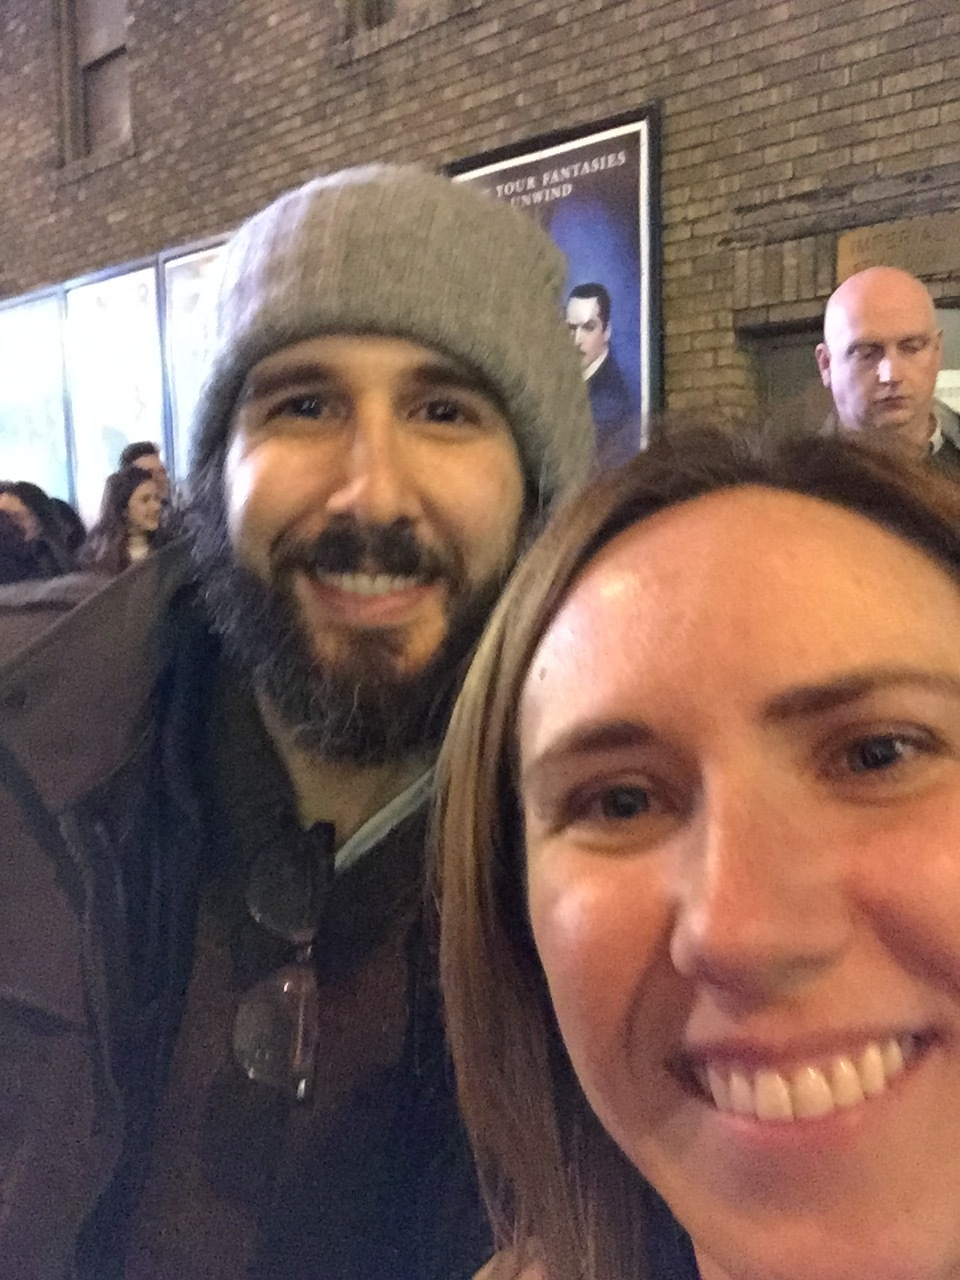 New York City, Feb. 2017  - I spent an awesome weekend in the Big Apple with some amazing girls. We went and saw Natasha, Pierre, and the Great Comet of 1812 on Broadway and I fangirled out by getting a photo with the lead star in the play – Josh Groban.